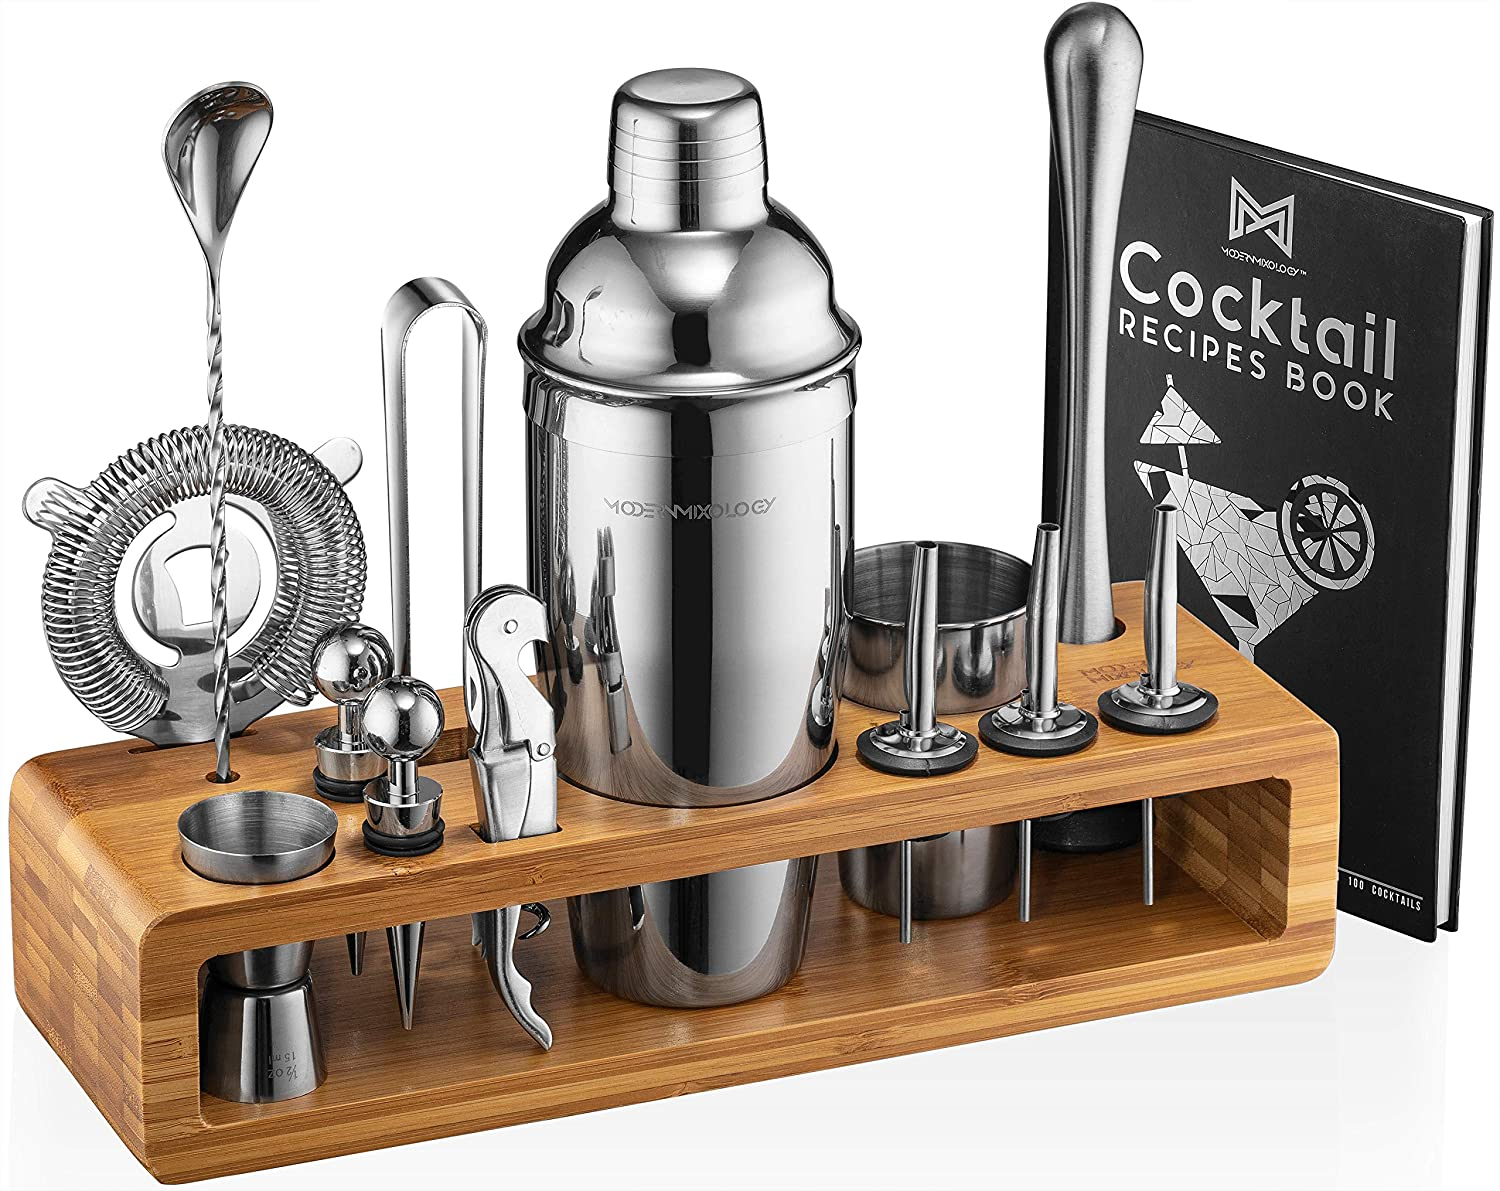 Mixology Bartender Kit: 23-Piece Bar Set Cocktail Shaker Set with Stylish Bamboo Stand | Perfect for Home Bar Tools Bartender Tool Kit and Martini Cocktail Shaker for Awesome Drink Mixing Experience